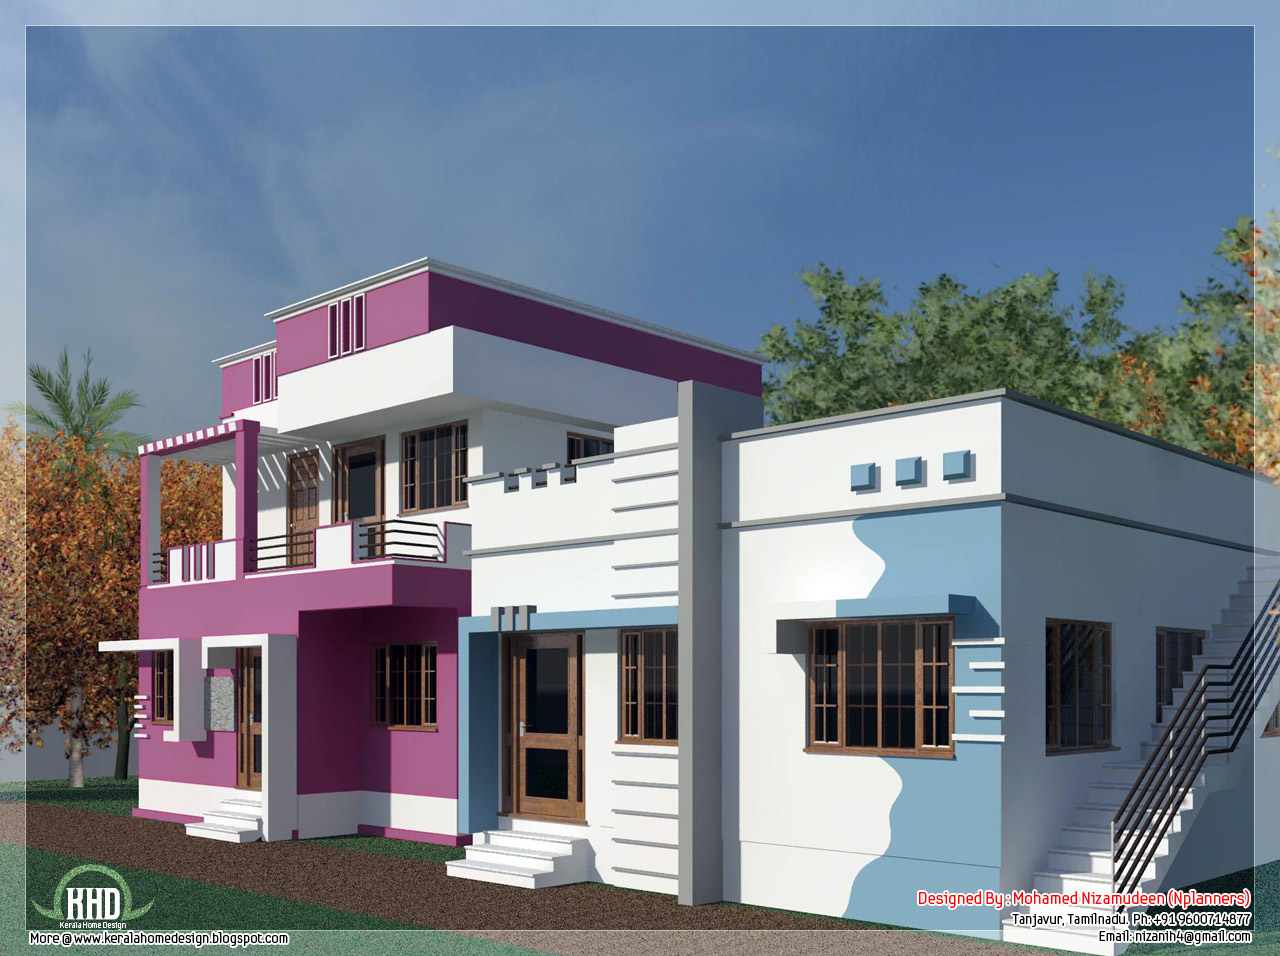 "0comments on ""Tamilnadu model home design in 3000 sq.feet"""